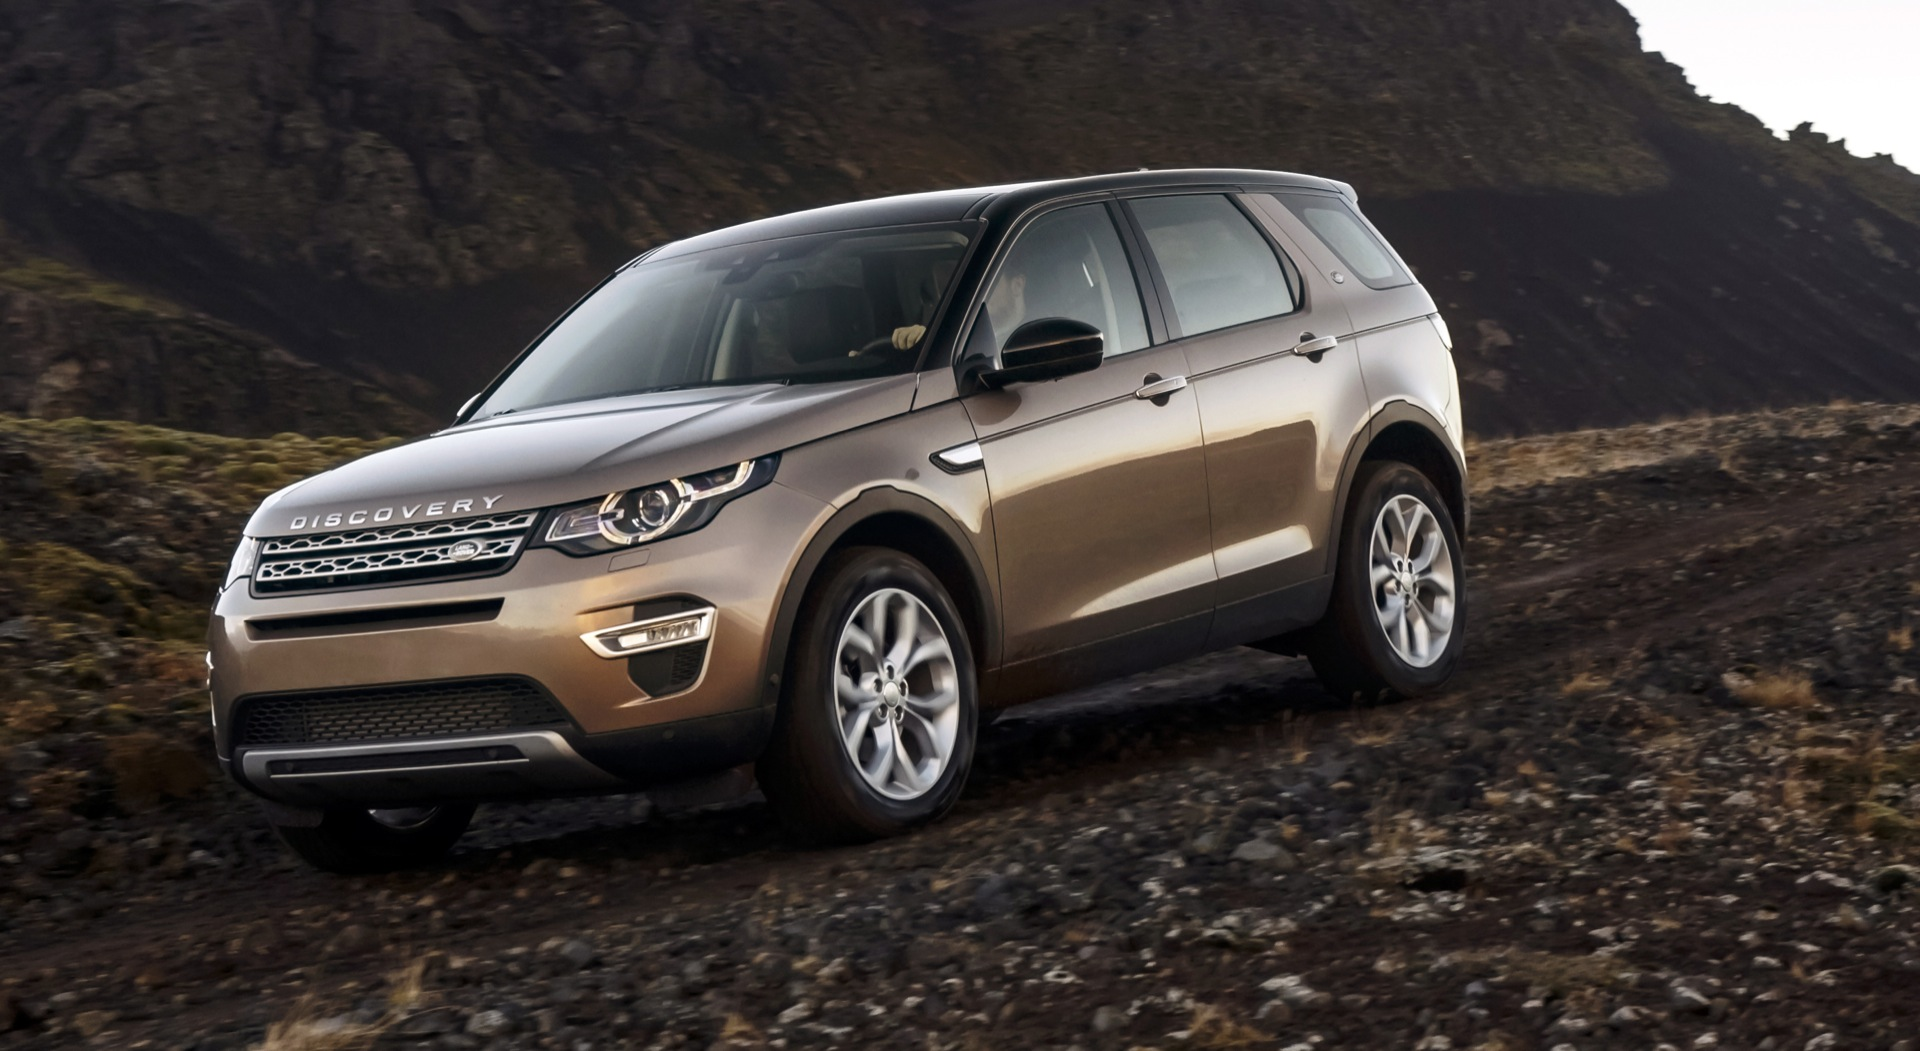 2015 2016 Land Rover Discovery Sport recalled to fix exterior lighting